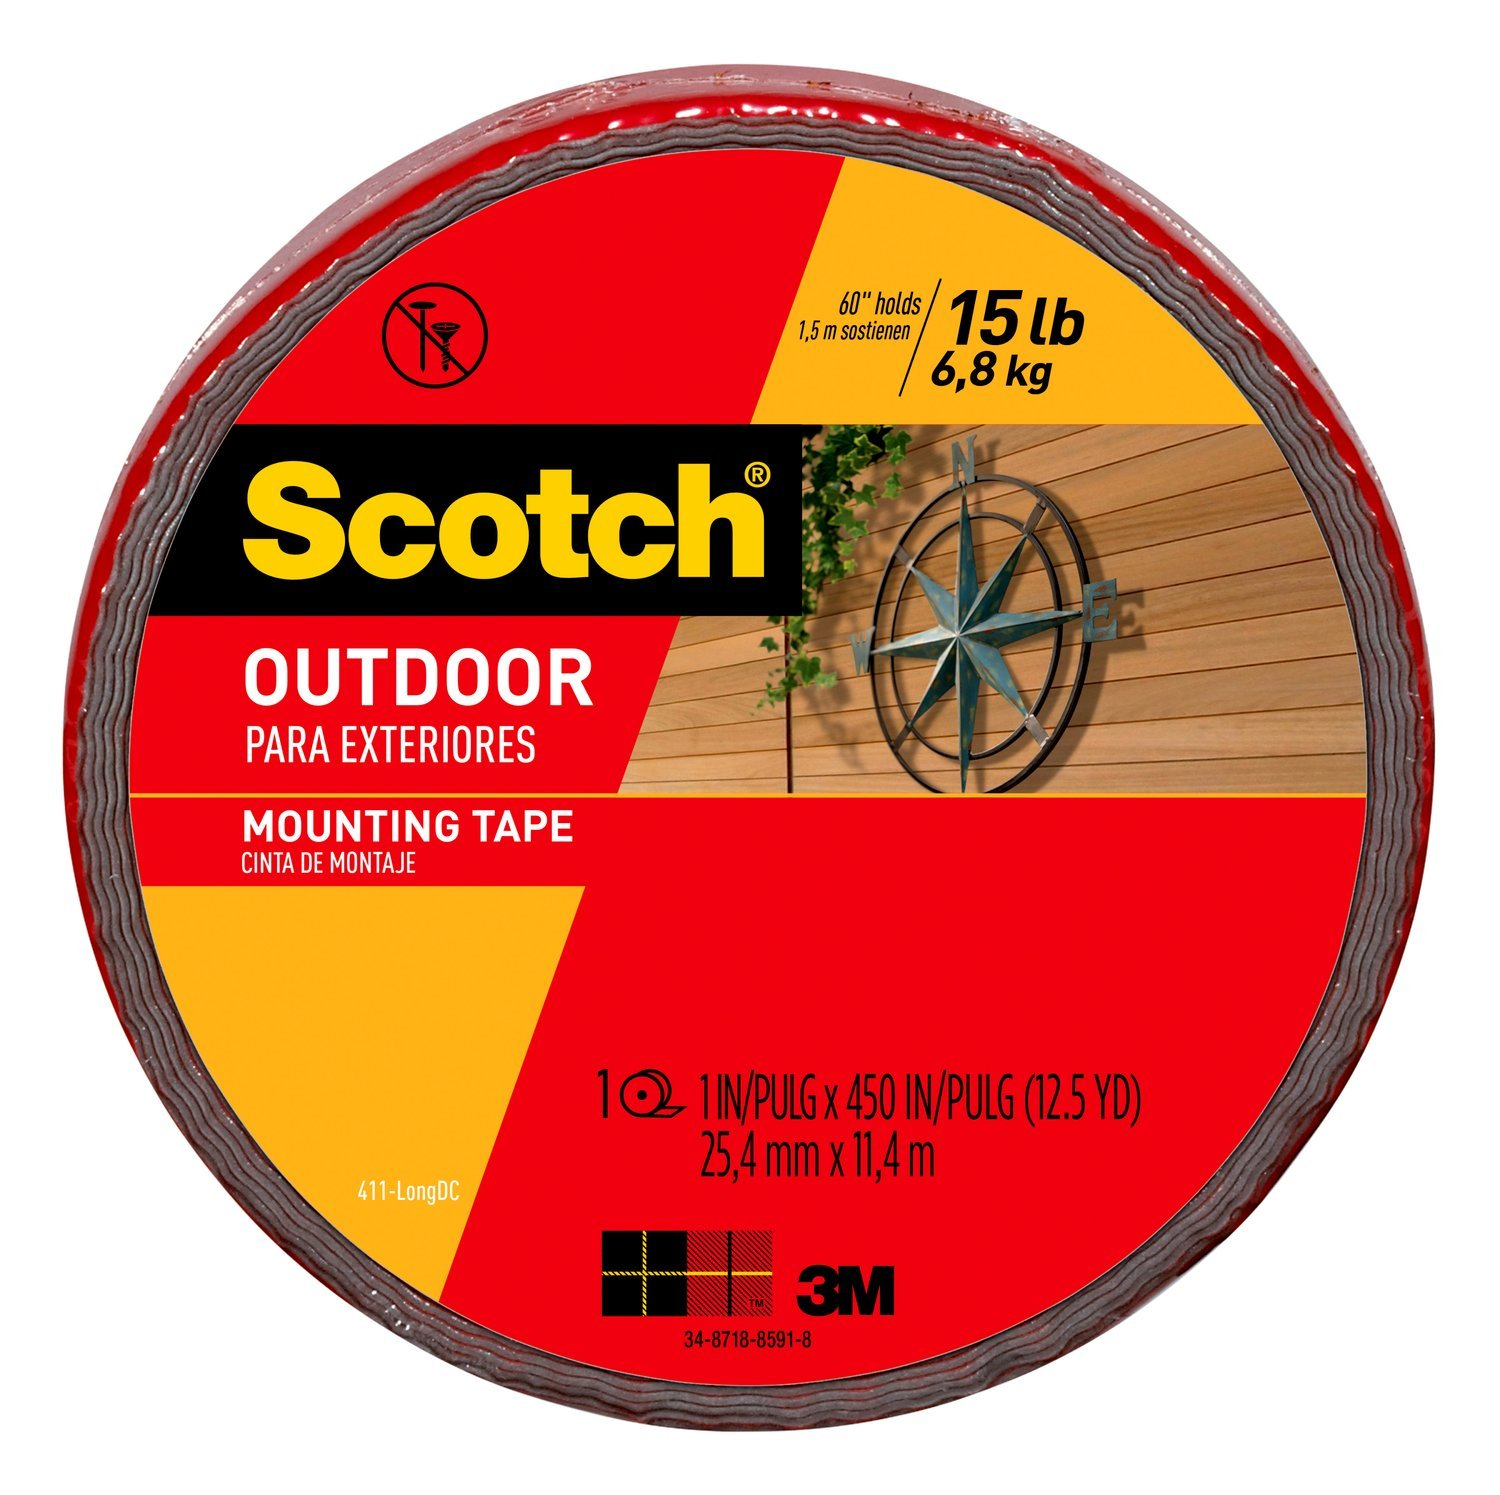 Scotch Outdoor Mounting Tape, 1-inch x 450-inches, Gray, 1-Roll (411-LONG)